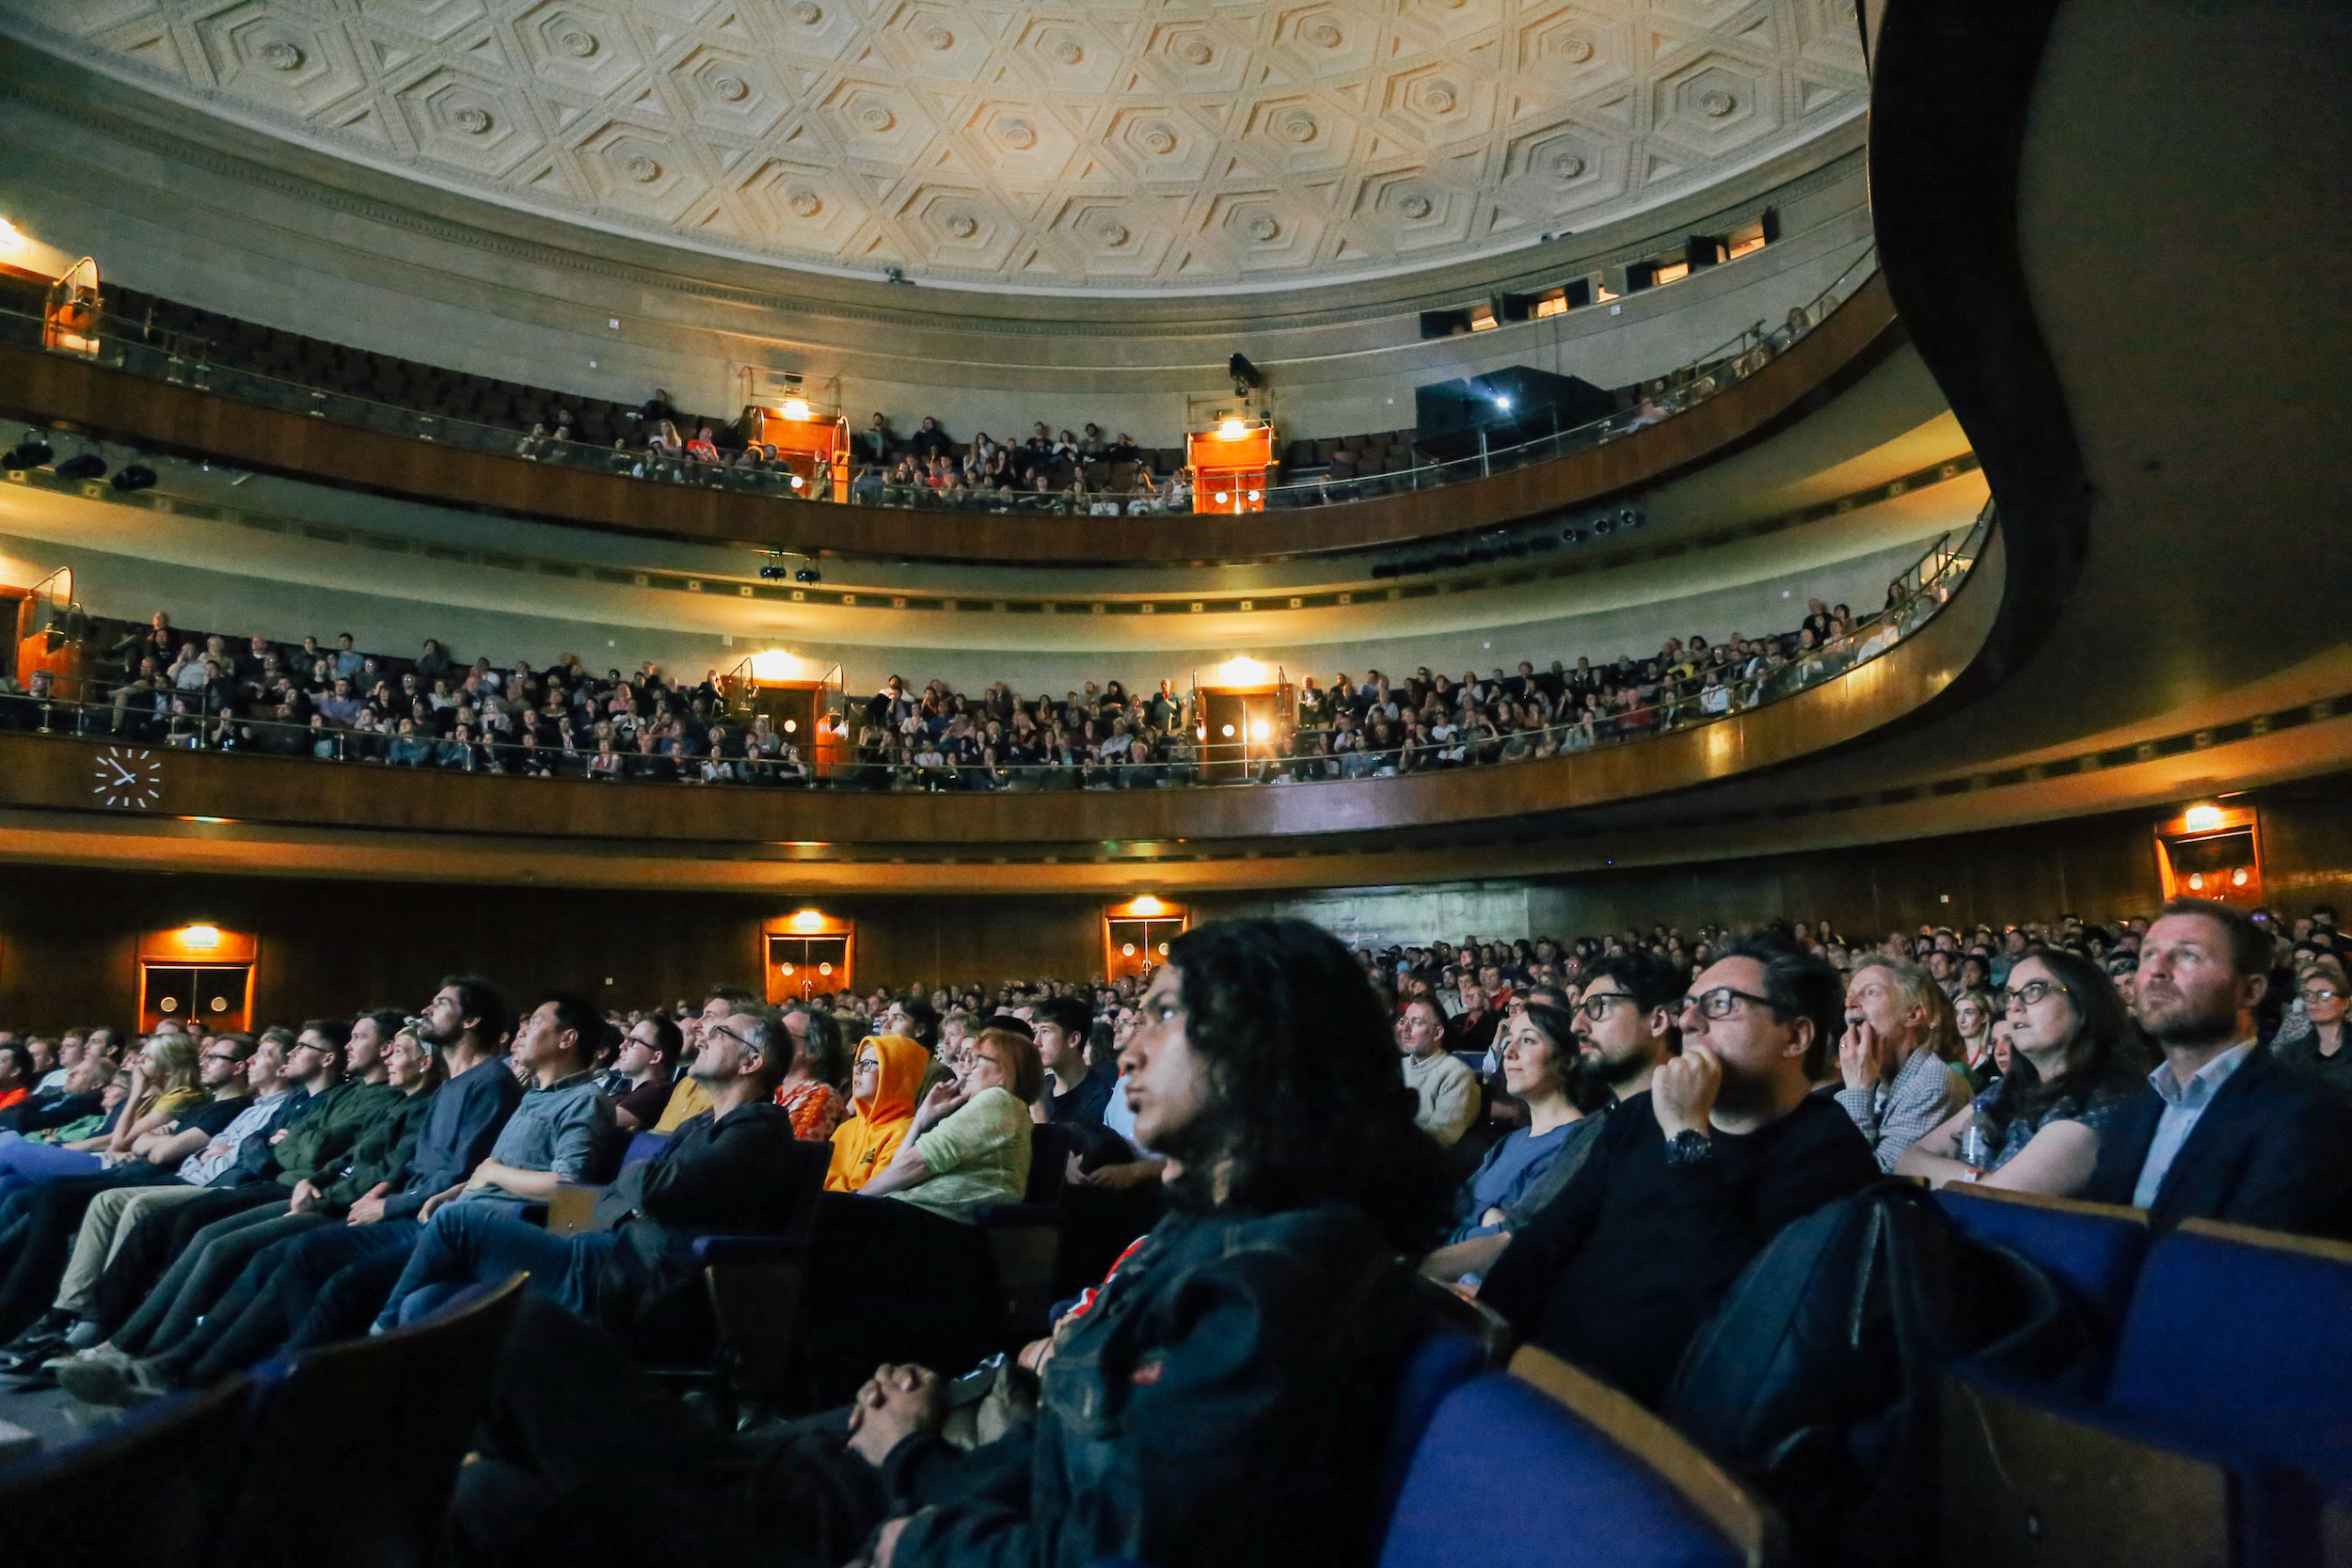 Attendees watch a film seated at Sheffield City Hall